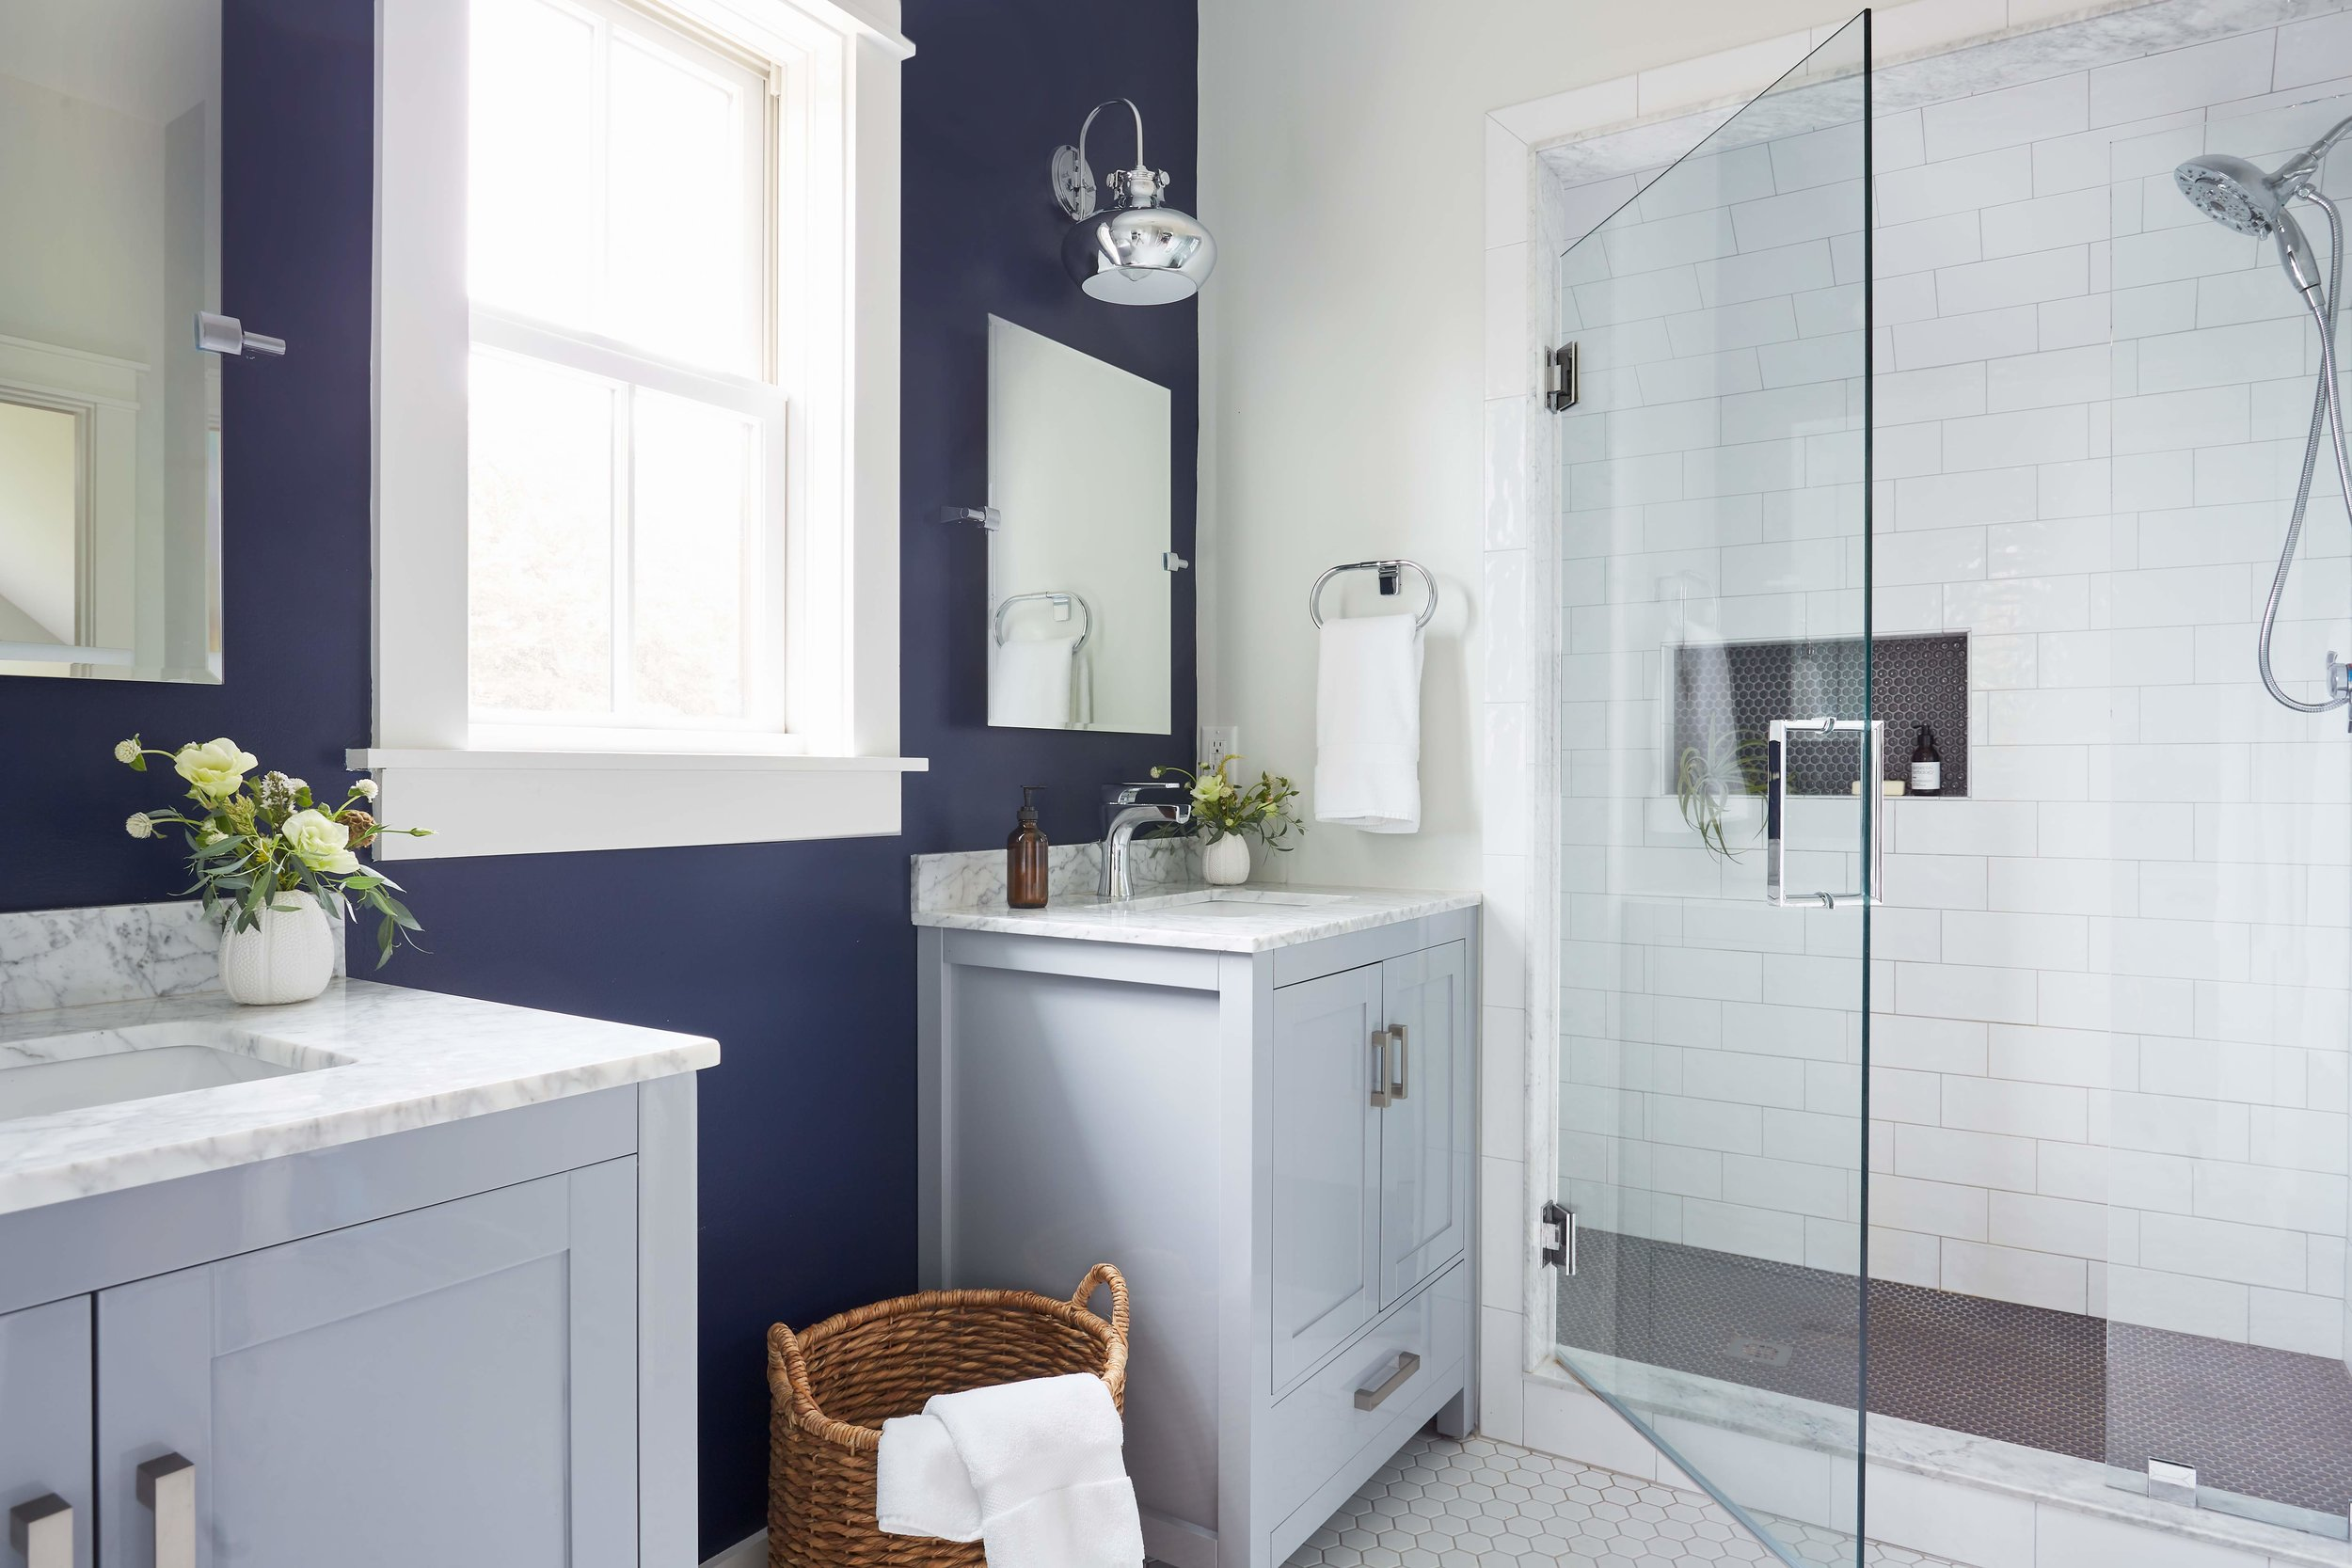 New bathroom designed as second master suite with navy accent wall.